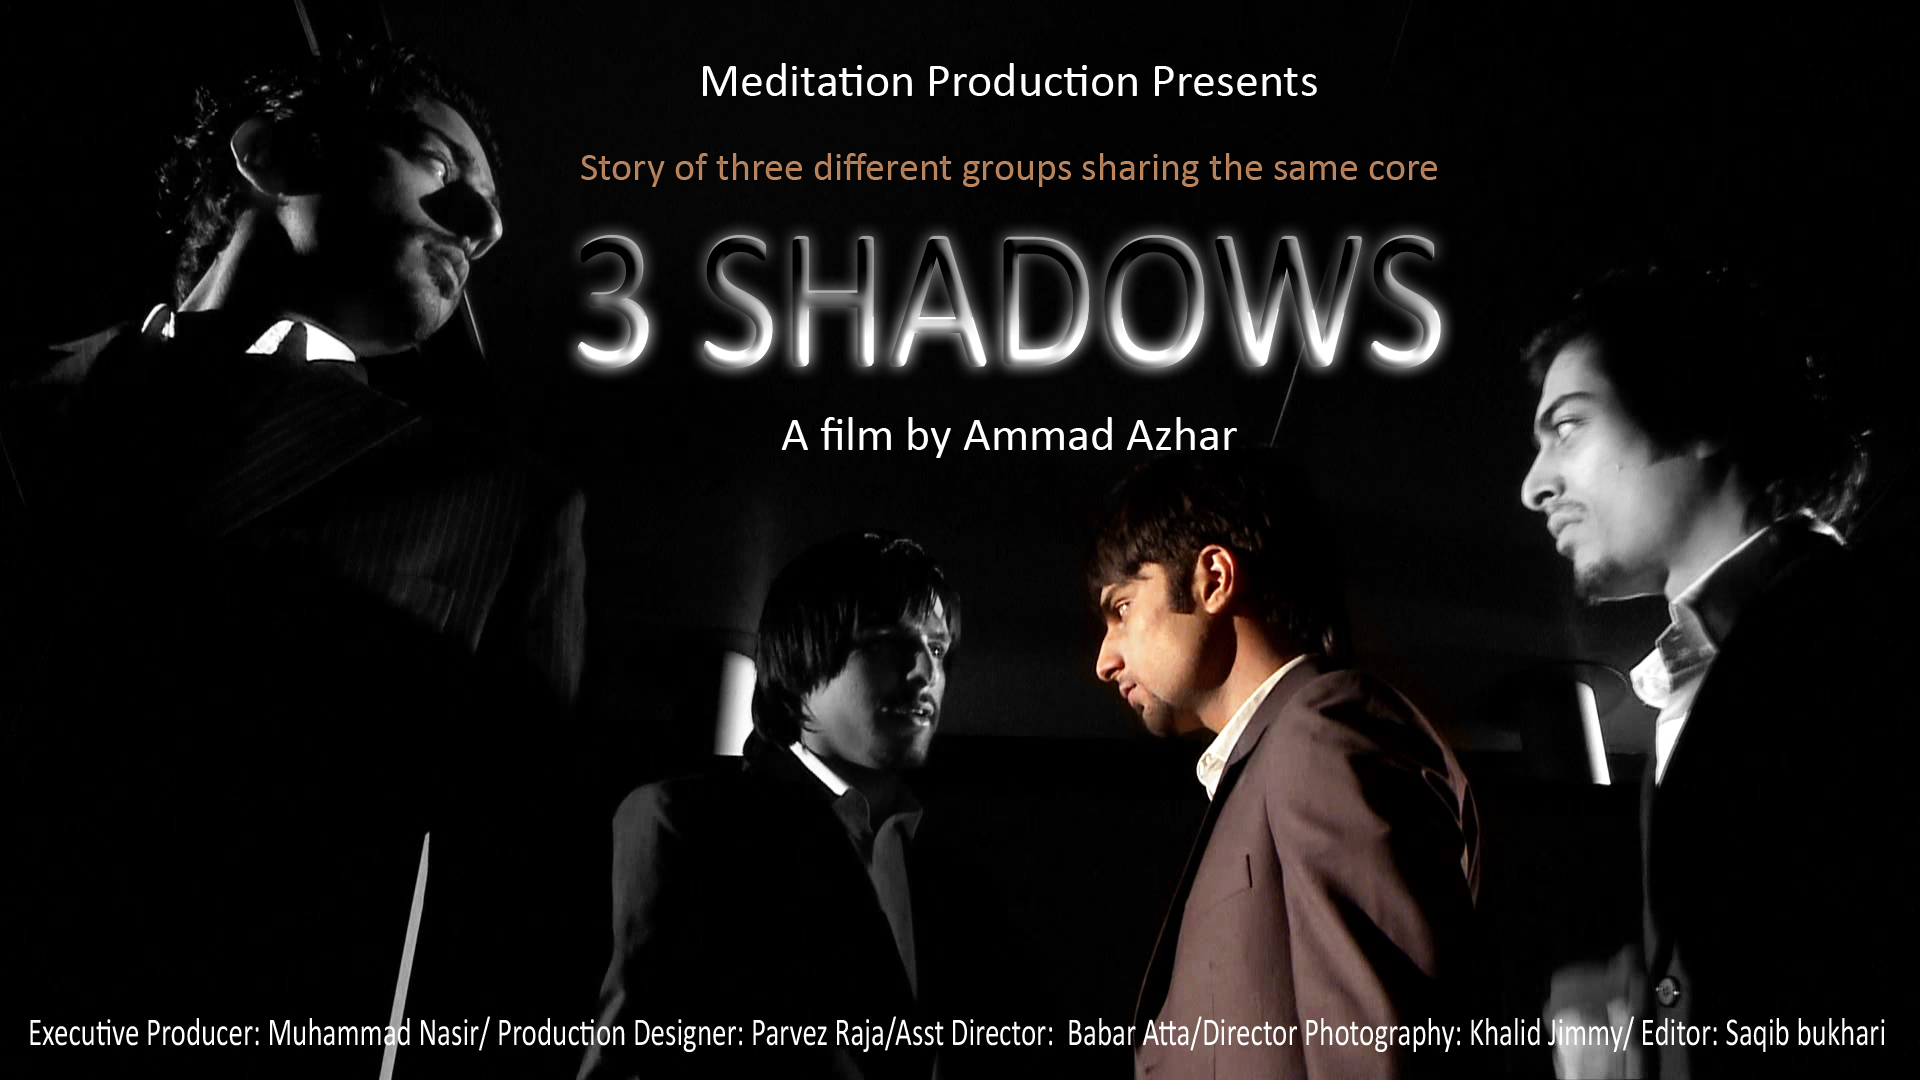 3 Shadows film by Meditation Productions